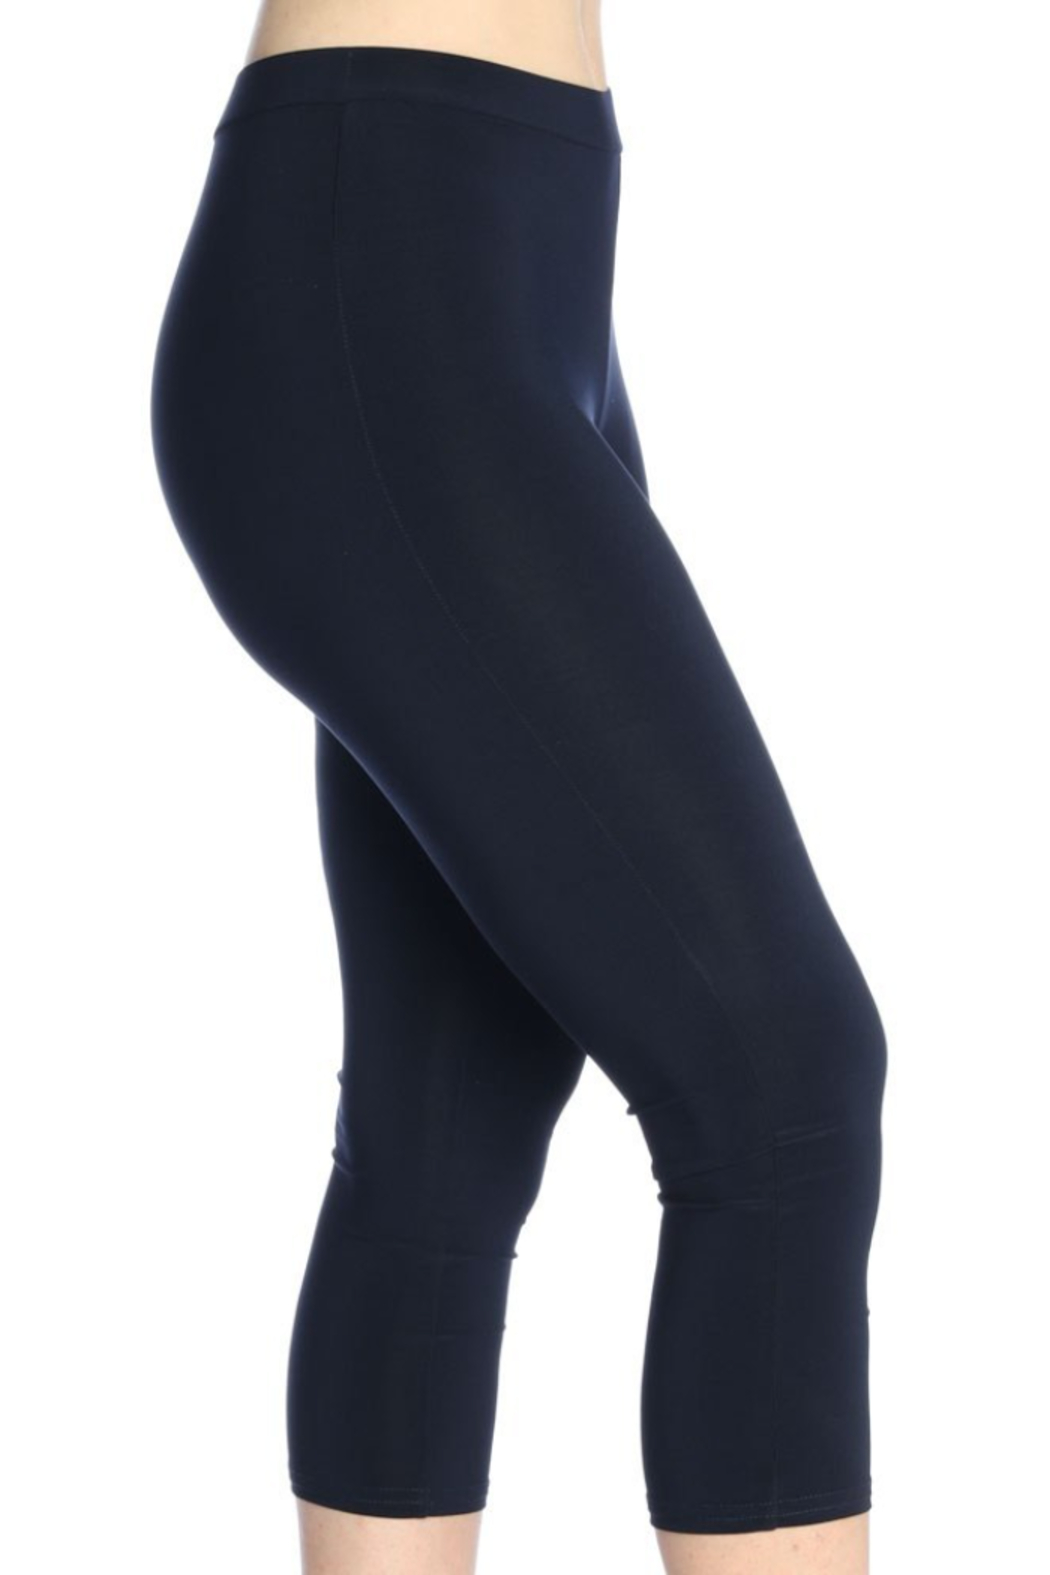 Michael Tyler Collections Knit Capri Basic Legging - Side Cropped Image